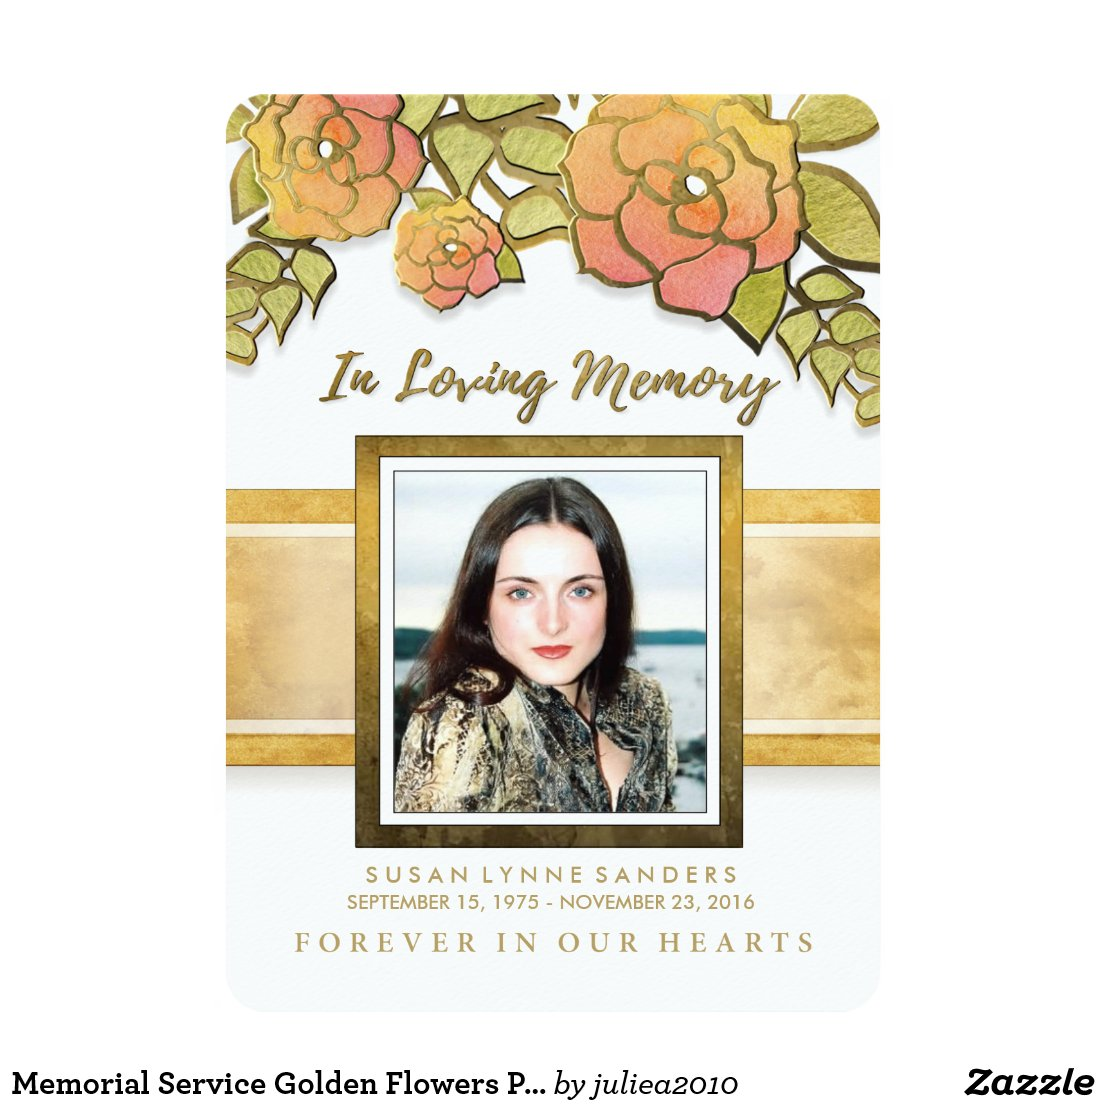 Memorial Service Golden Flowers Photo Invitation